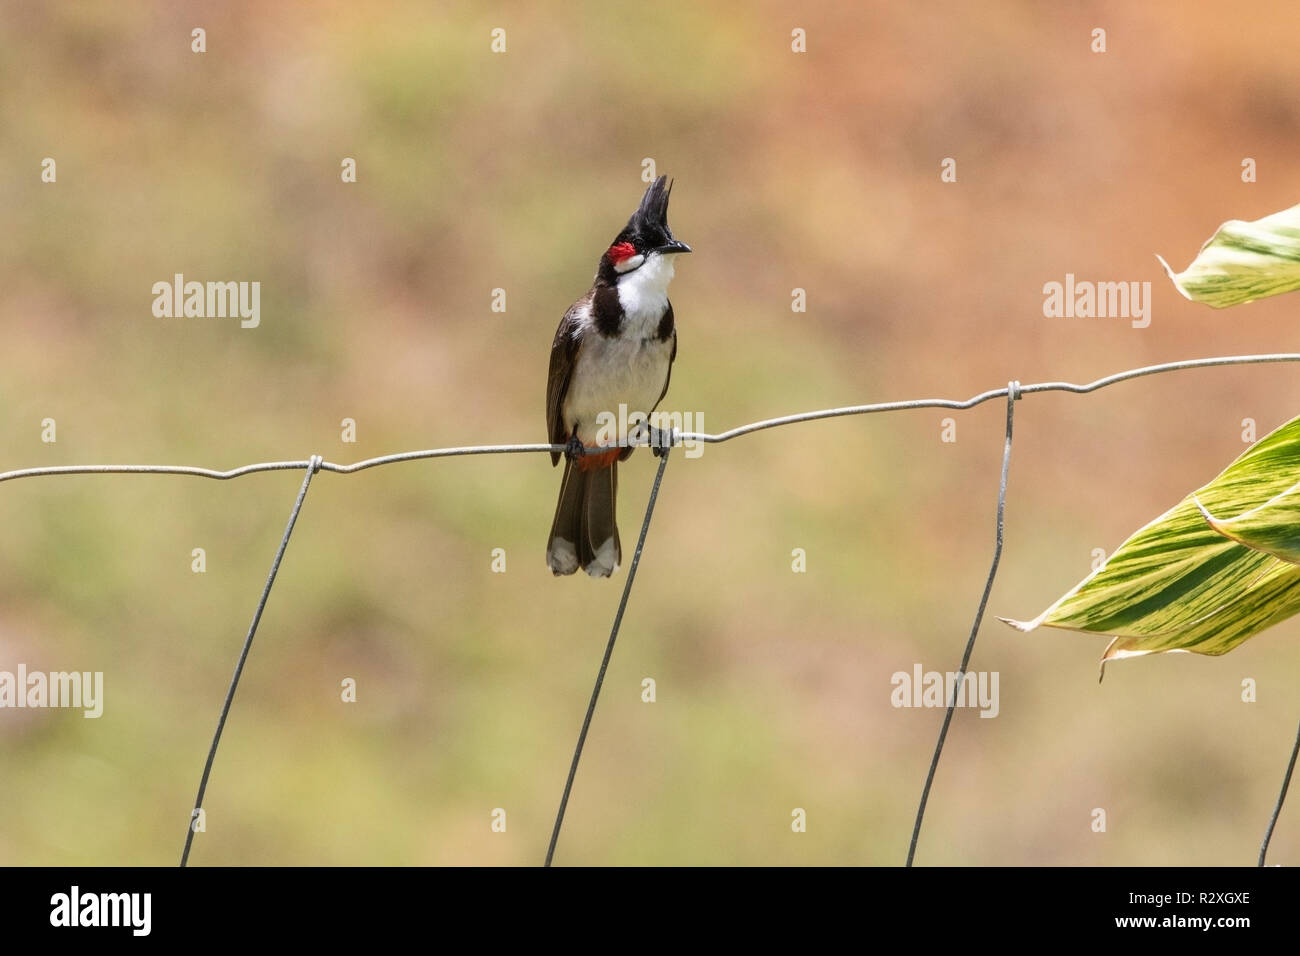 red-whiskered bulbul Pycnonotus jocosus adult perched on fence, Maurtitus, Indian Ocean - Stock Image